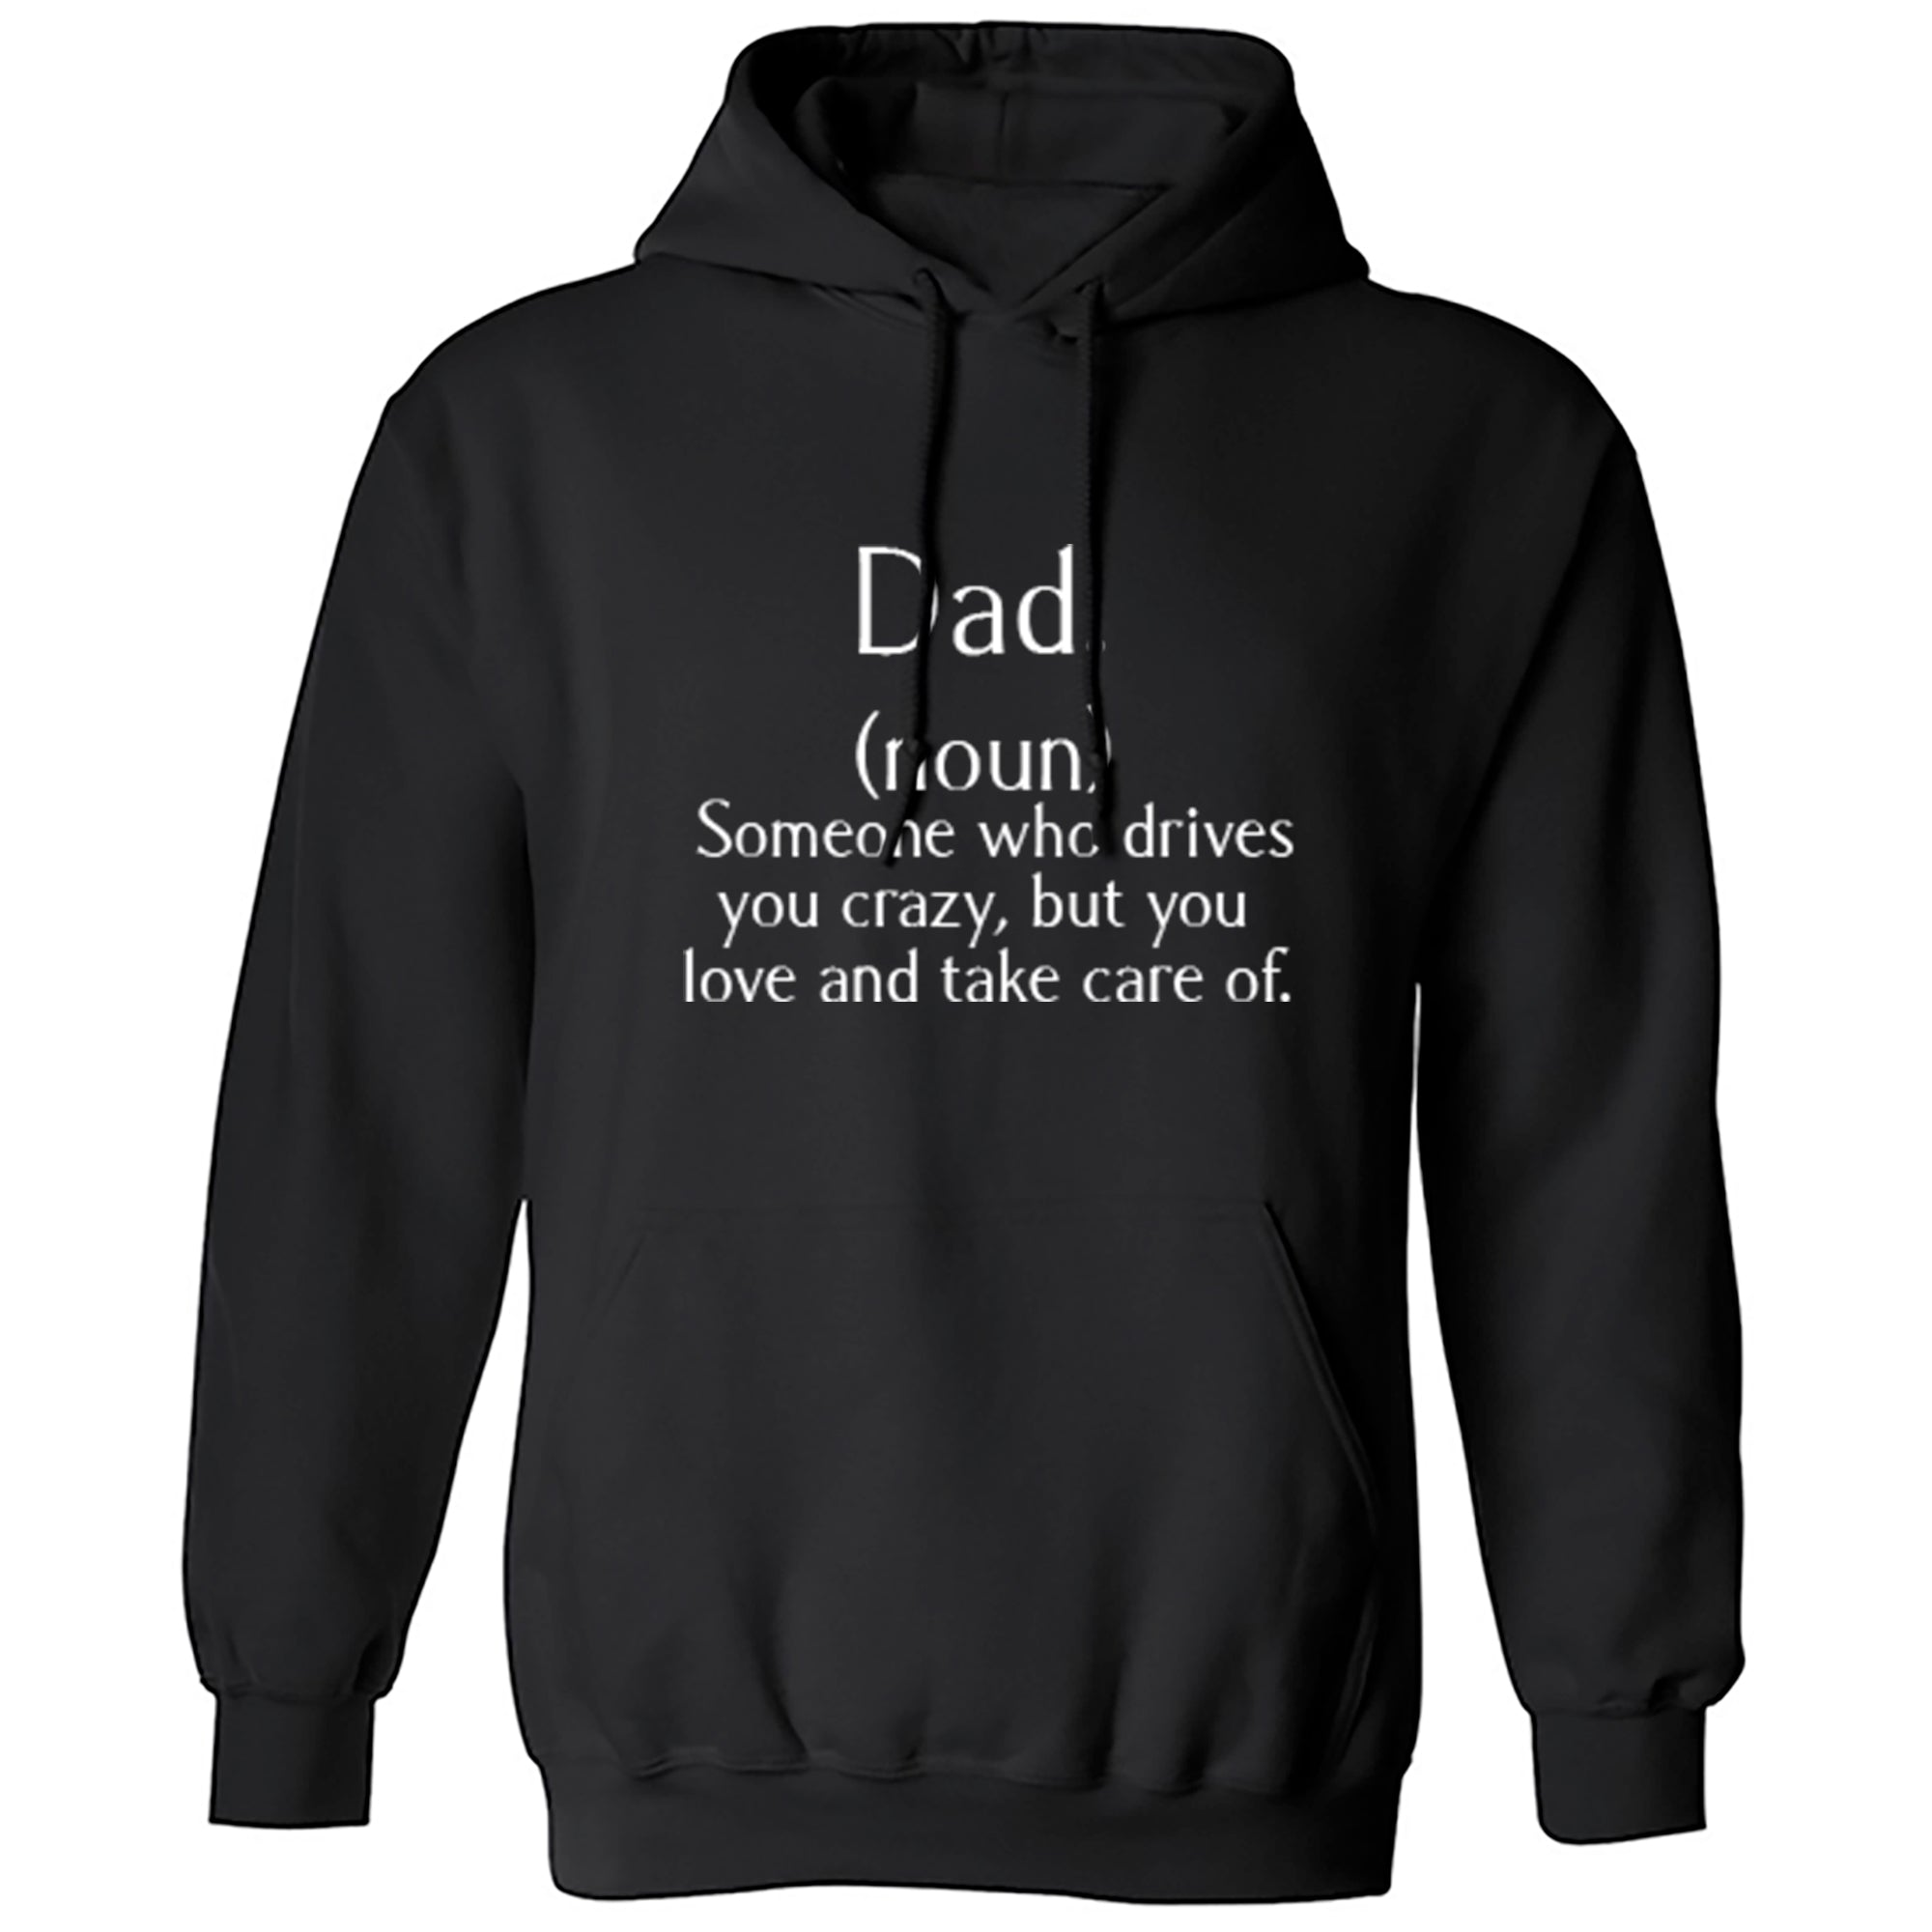 Dad Definition Unisex Hoodie S0310 - Illustrated Identity Ltd.